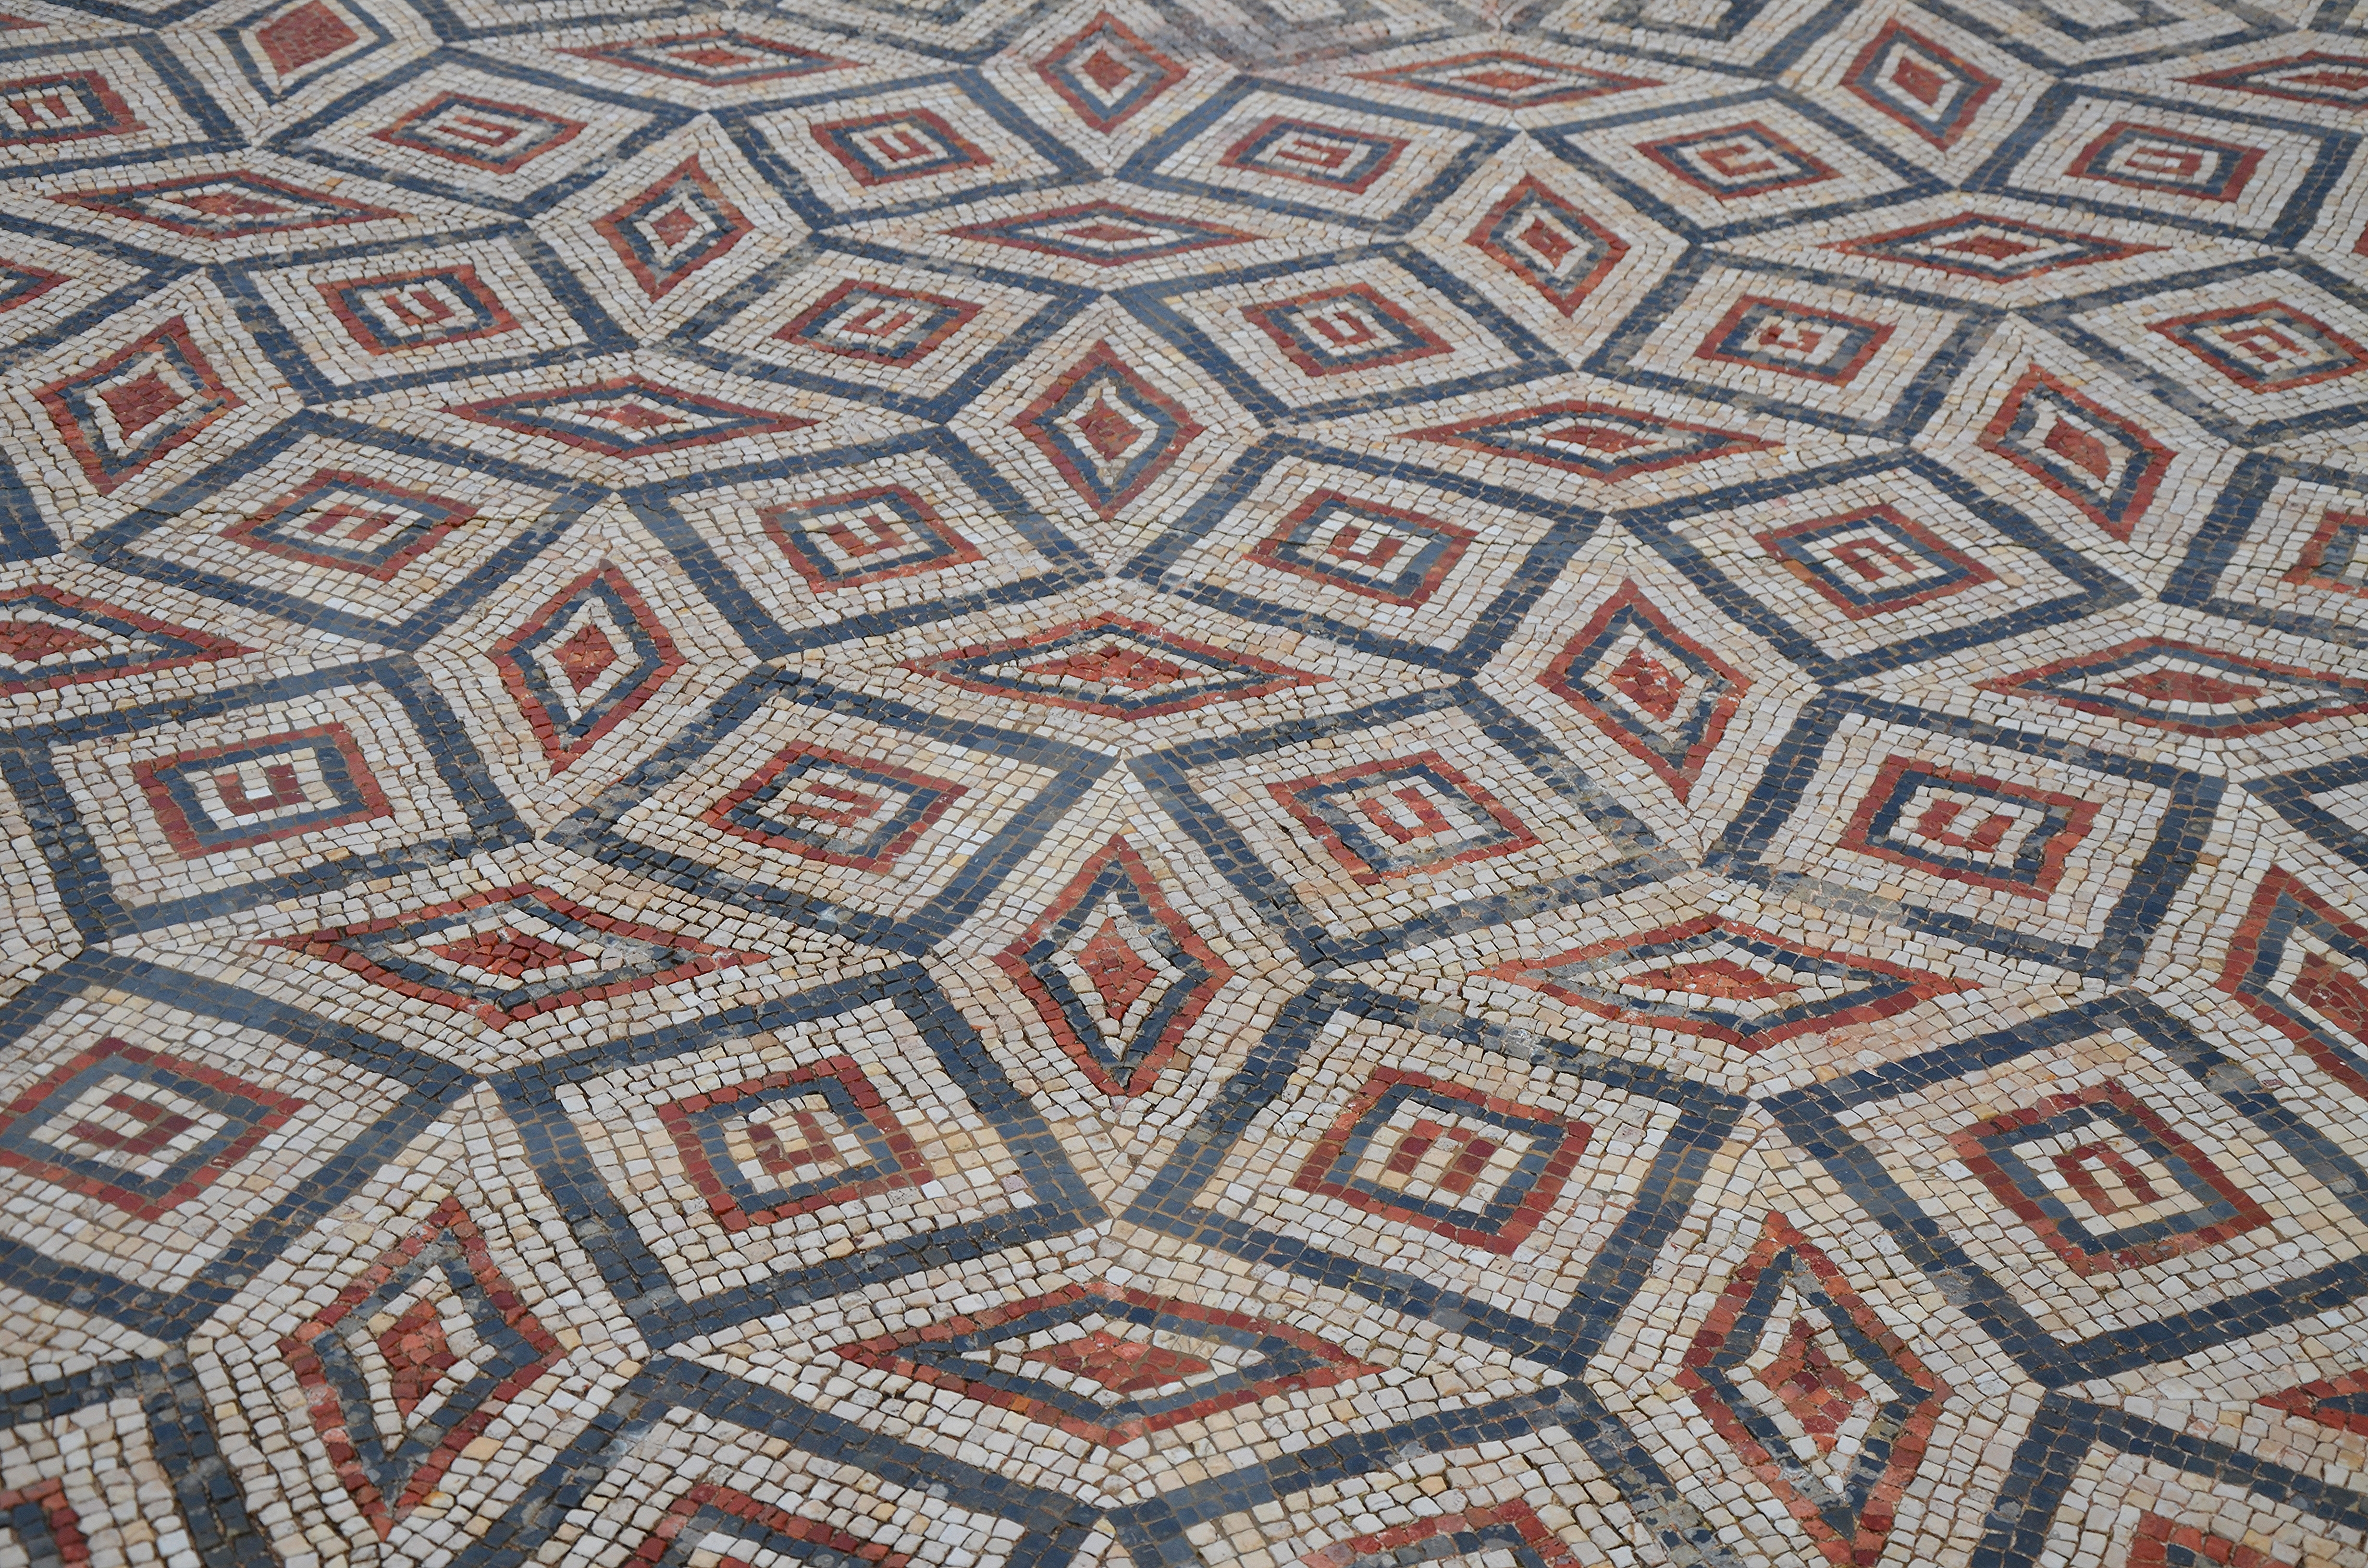 File:Mosaic floor in the House of the Swastika with geometric patterns,  Conimbriga,